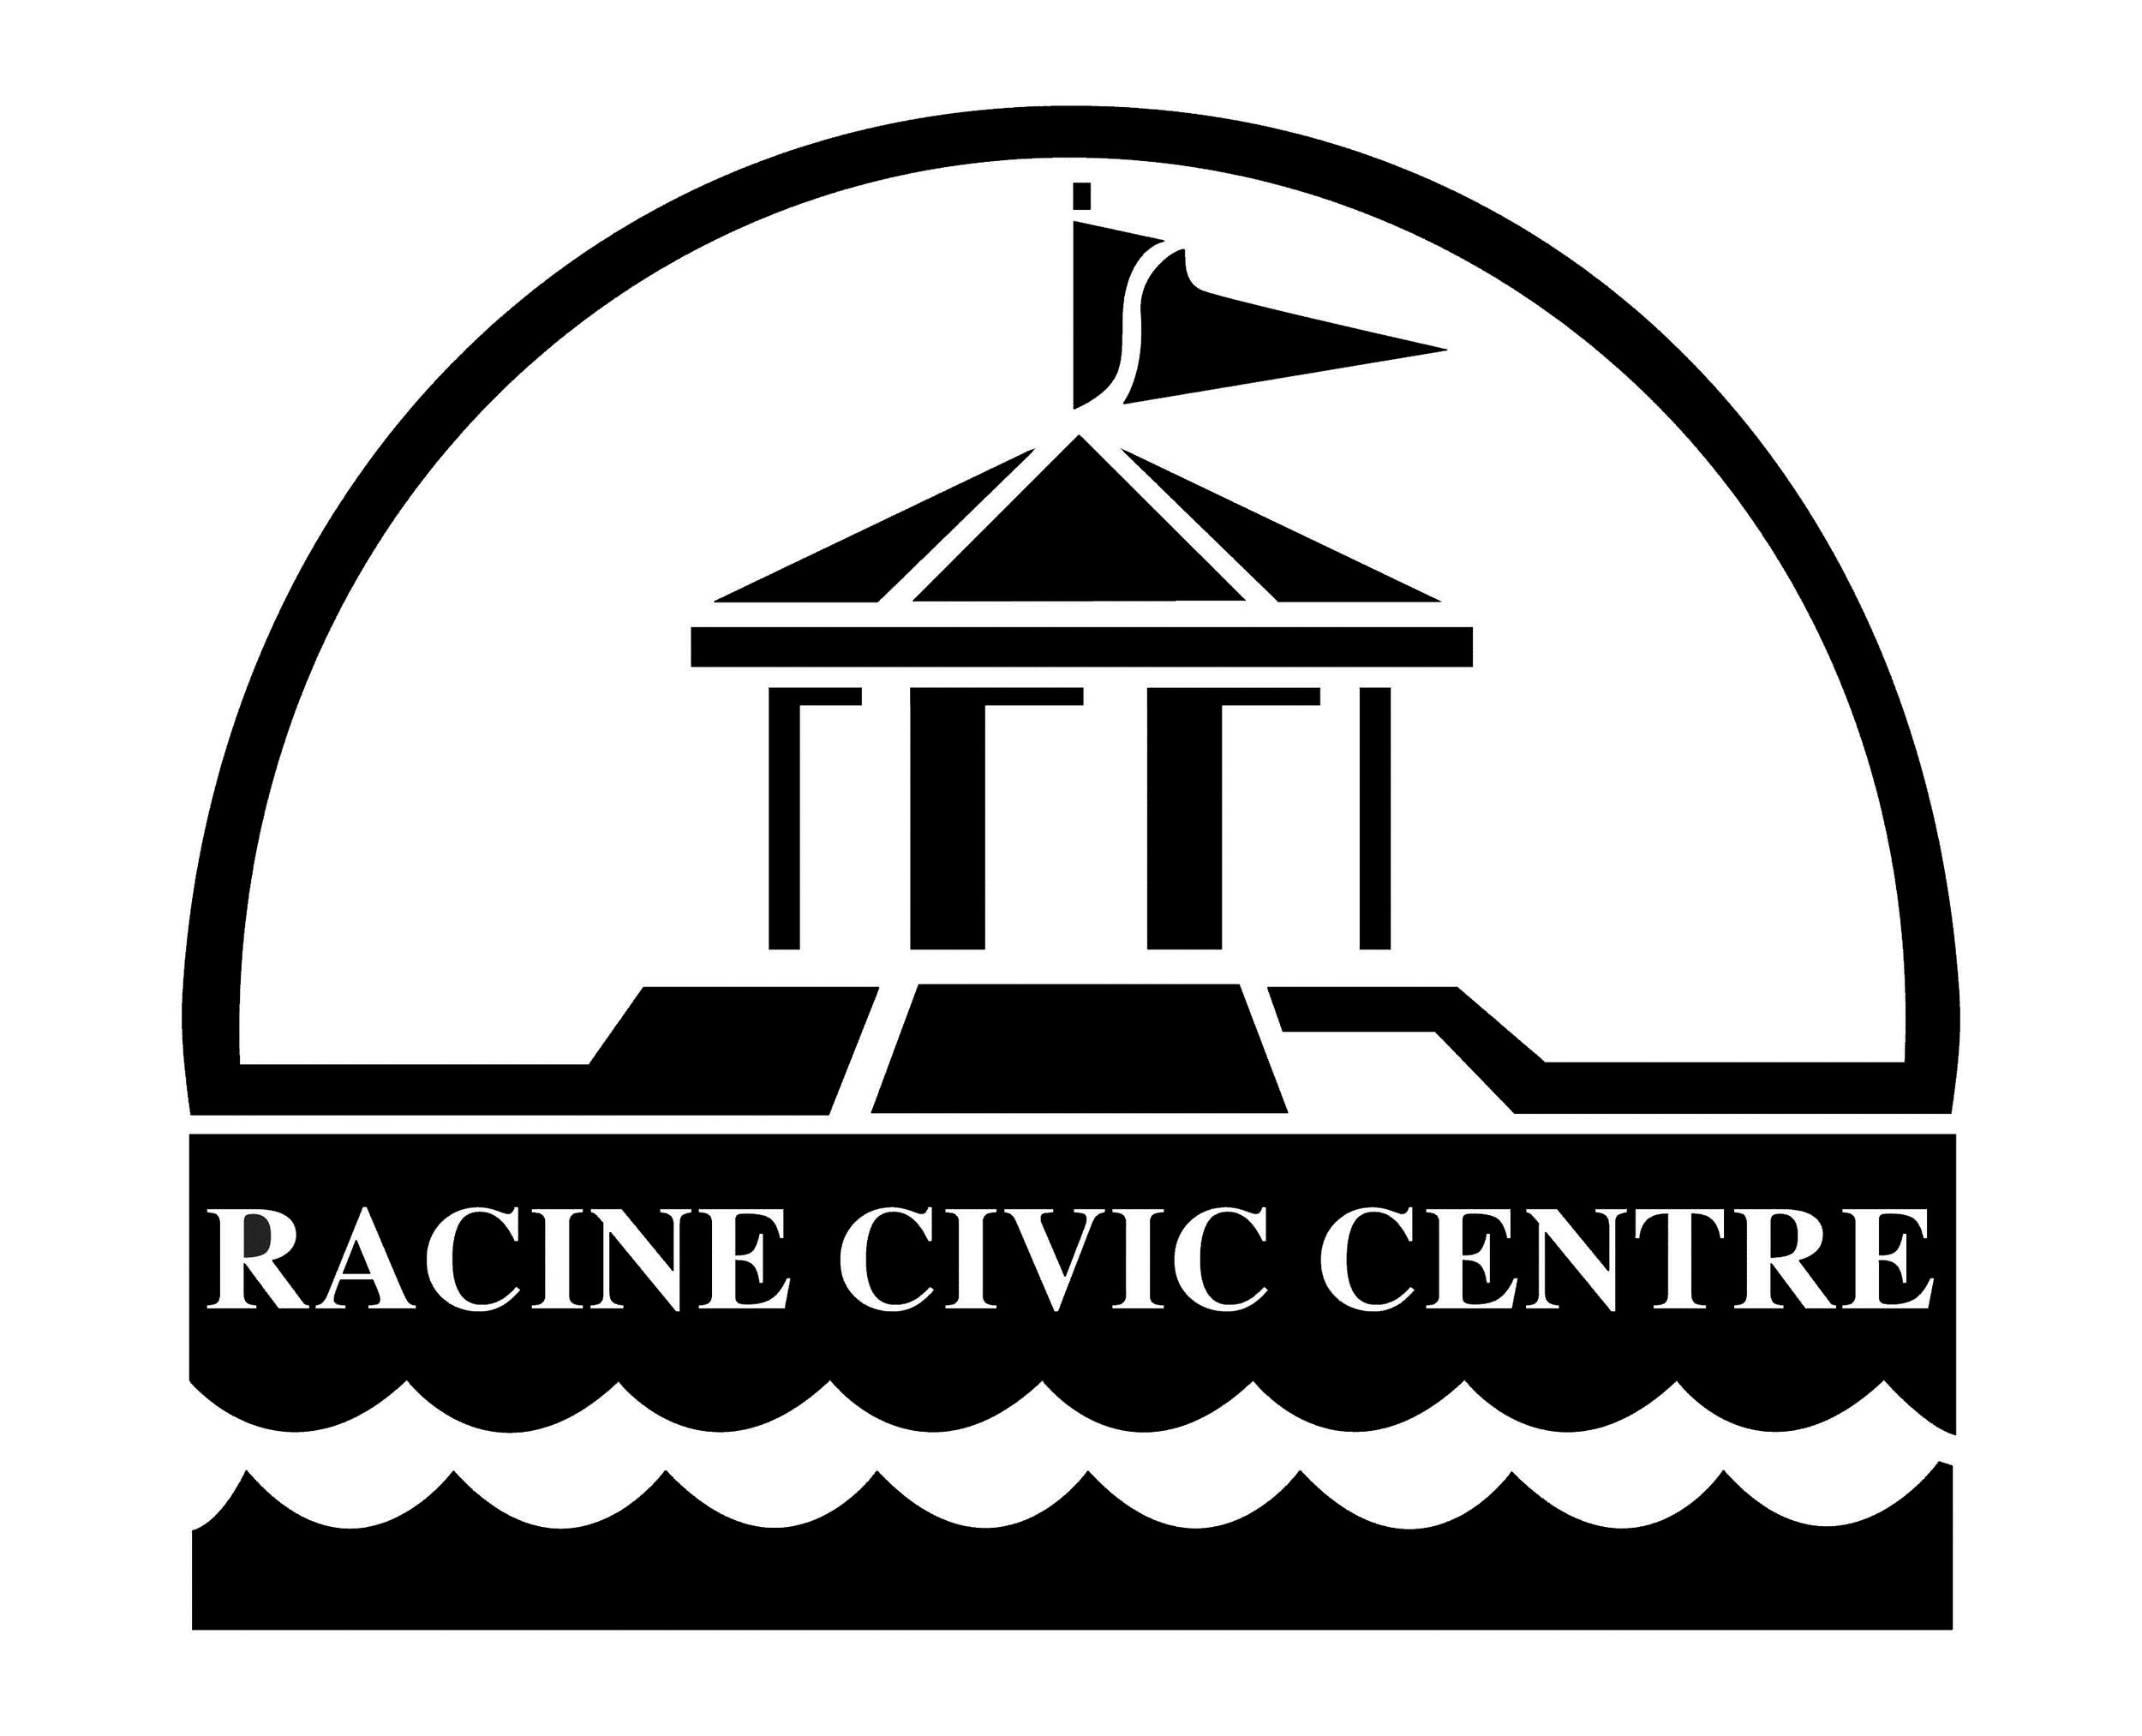 Racine Civic Centre